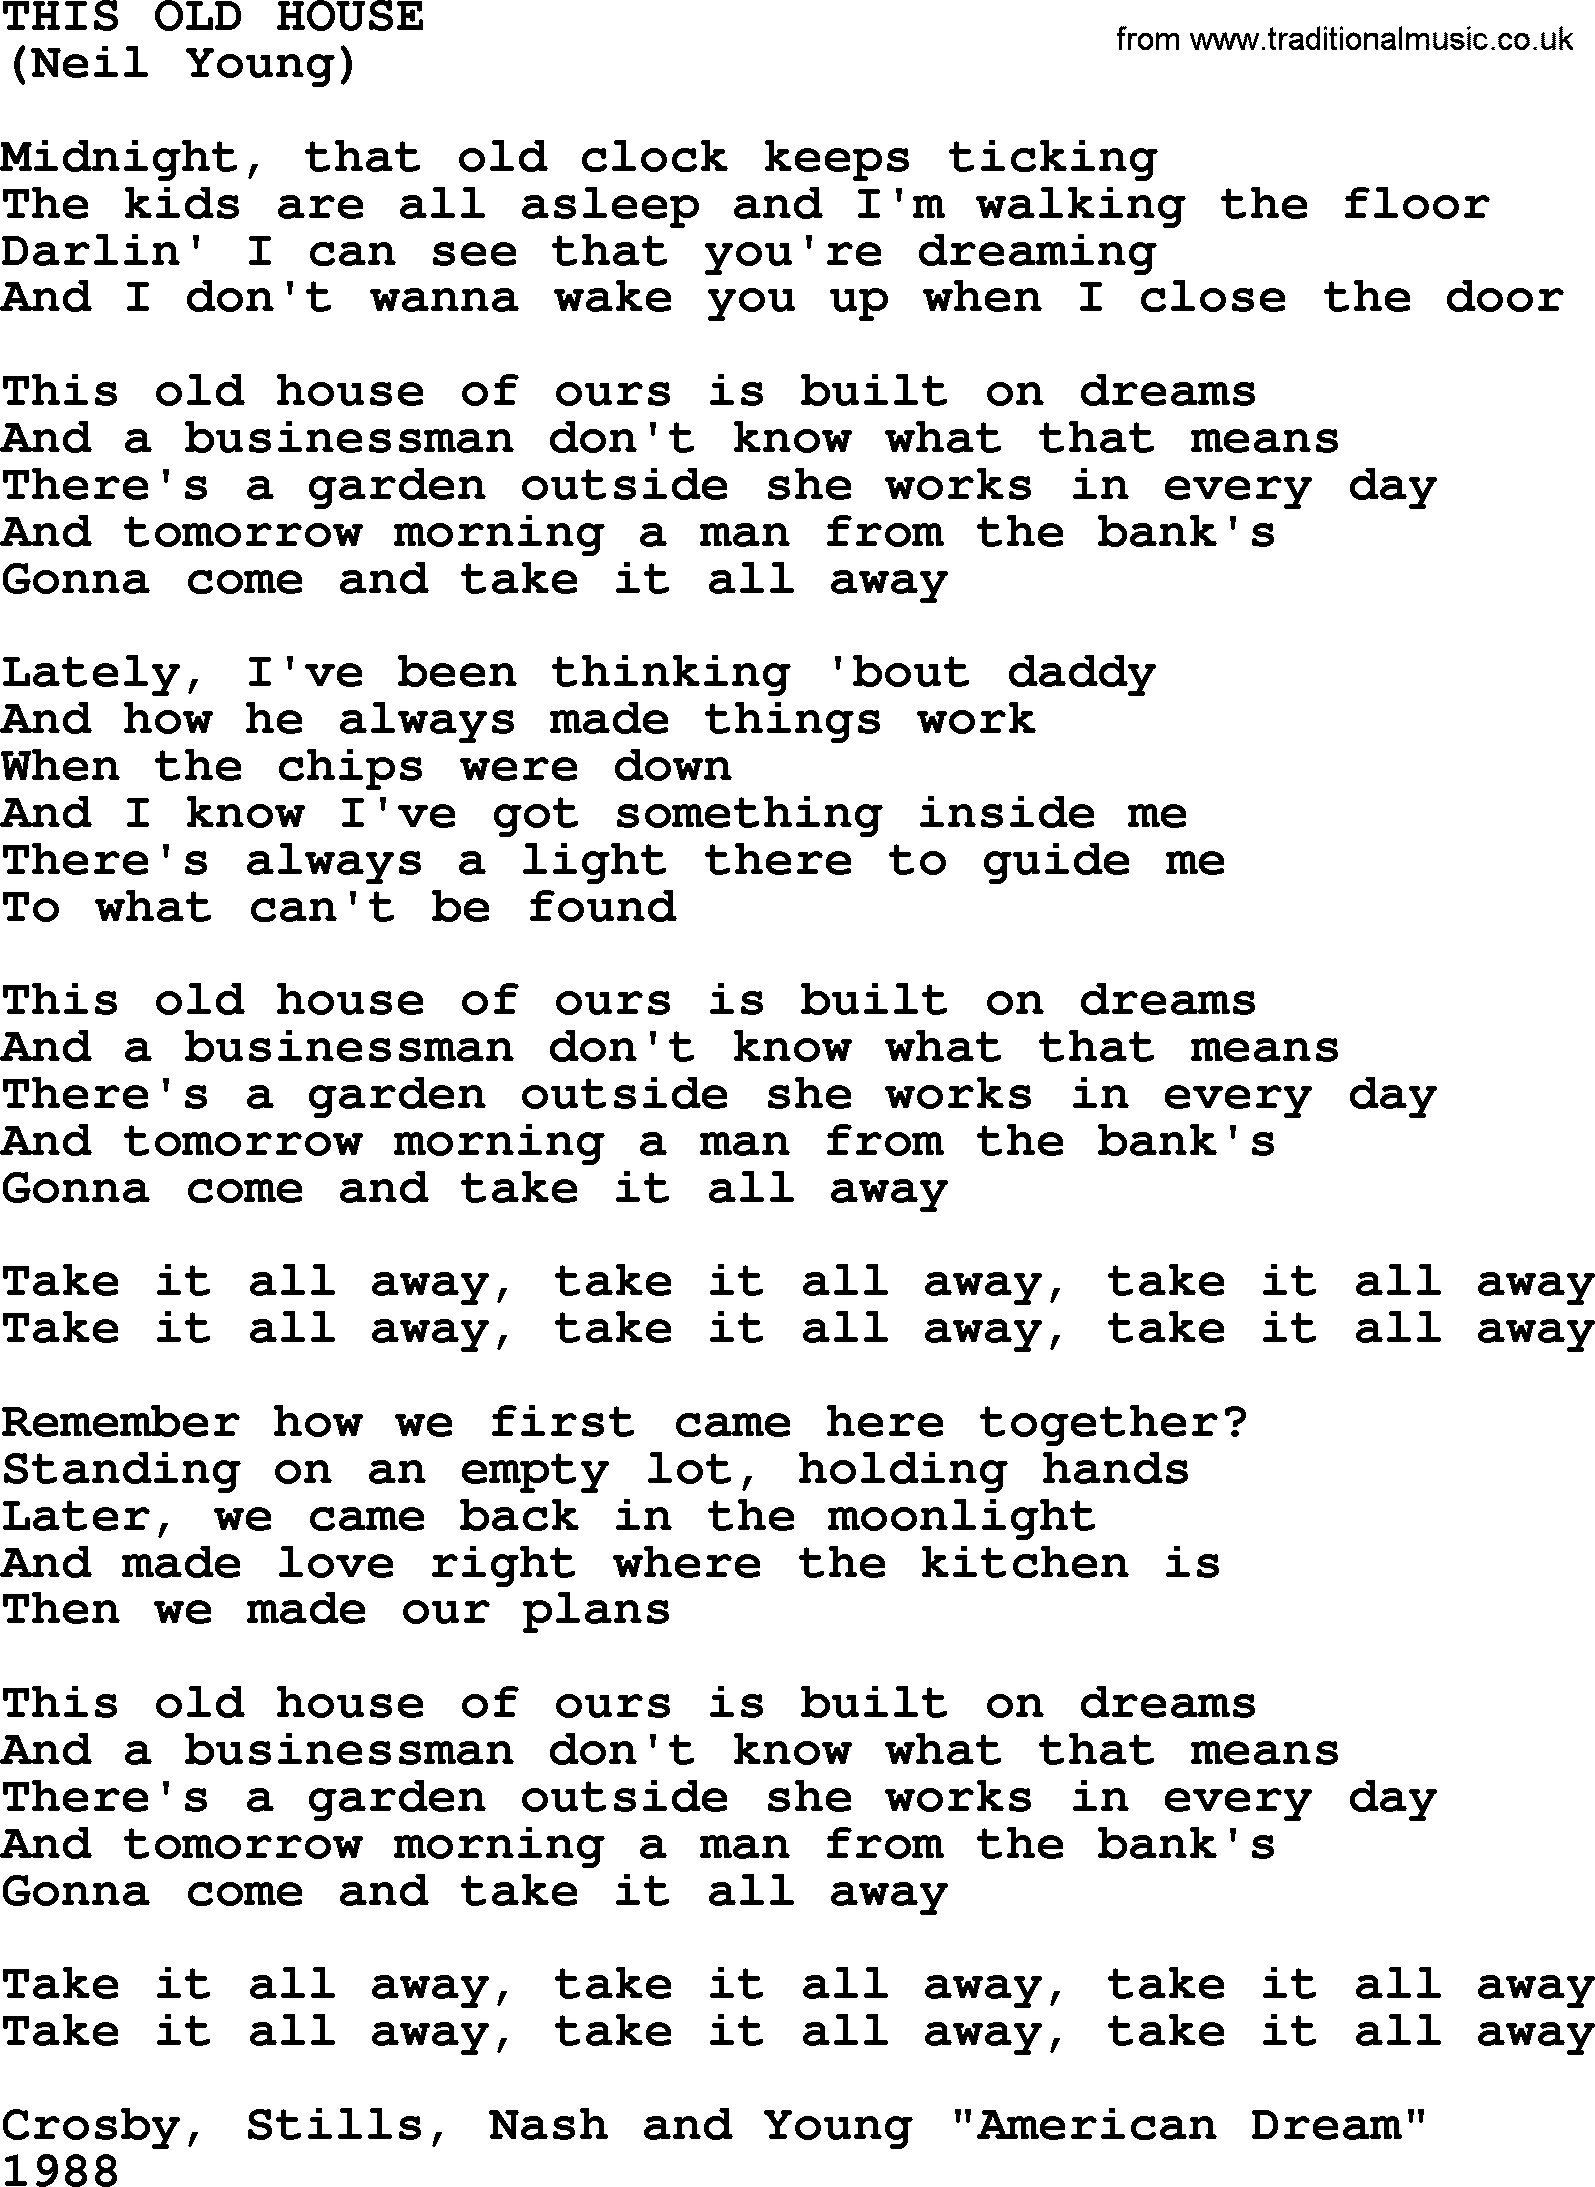 This Old House by The Byrds lyrics with pdf